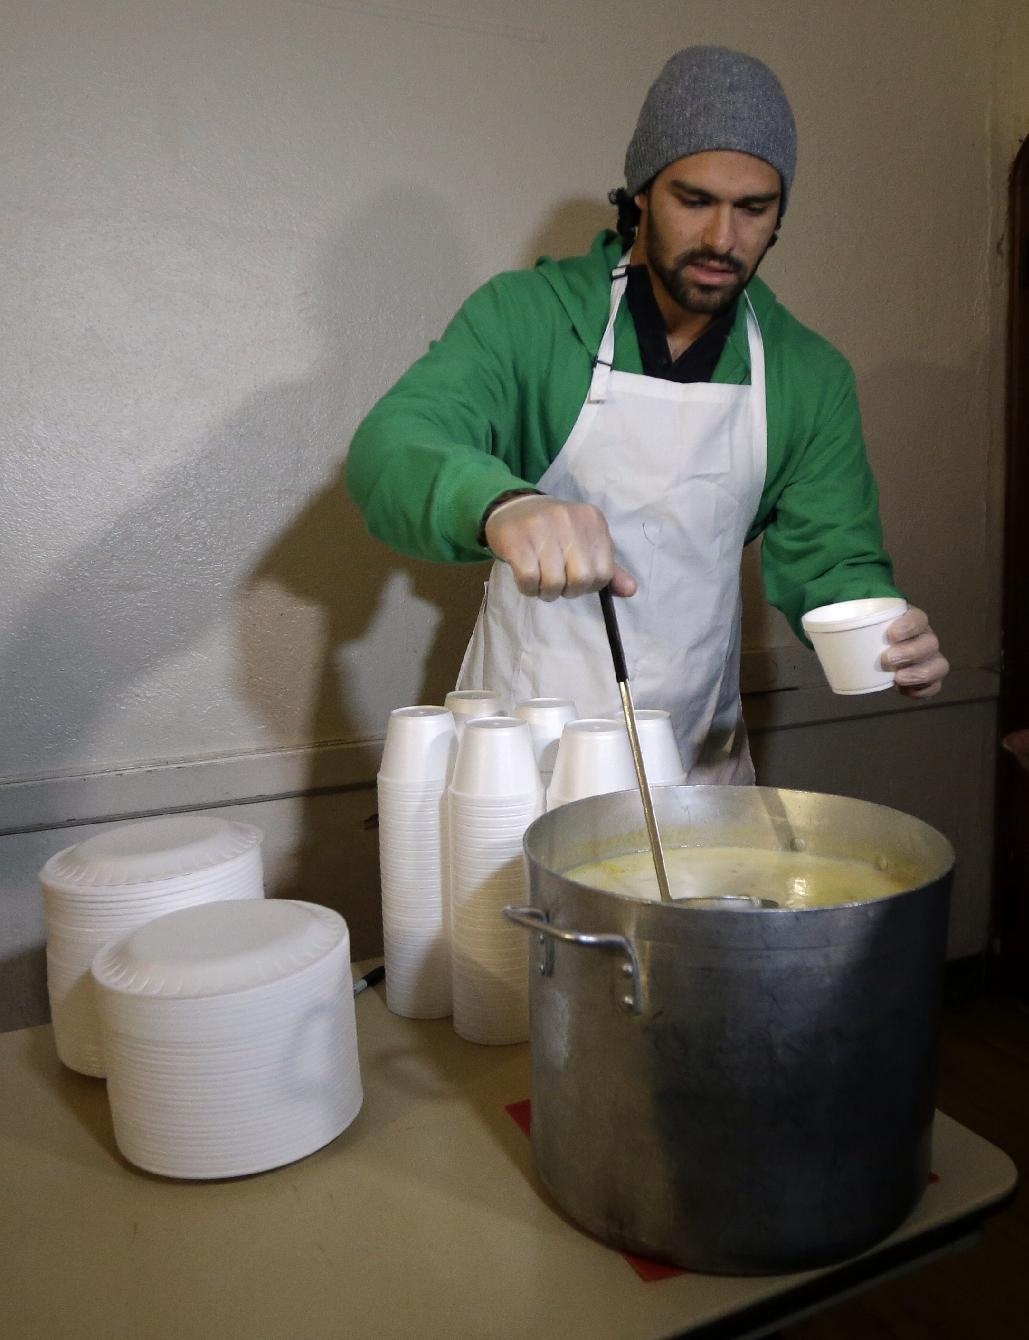 New York Jets NFL football quarterback Mark Sanchez pours a bowl of soup during a visit to the Community Soup Kitchen of Morristown as part of the team's Thanksgiving Day week celebration, Tuesday, Nov. 26, 2013, in Morristown, N.J